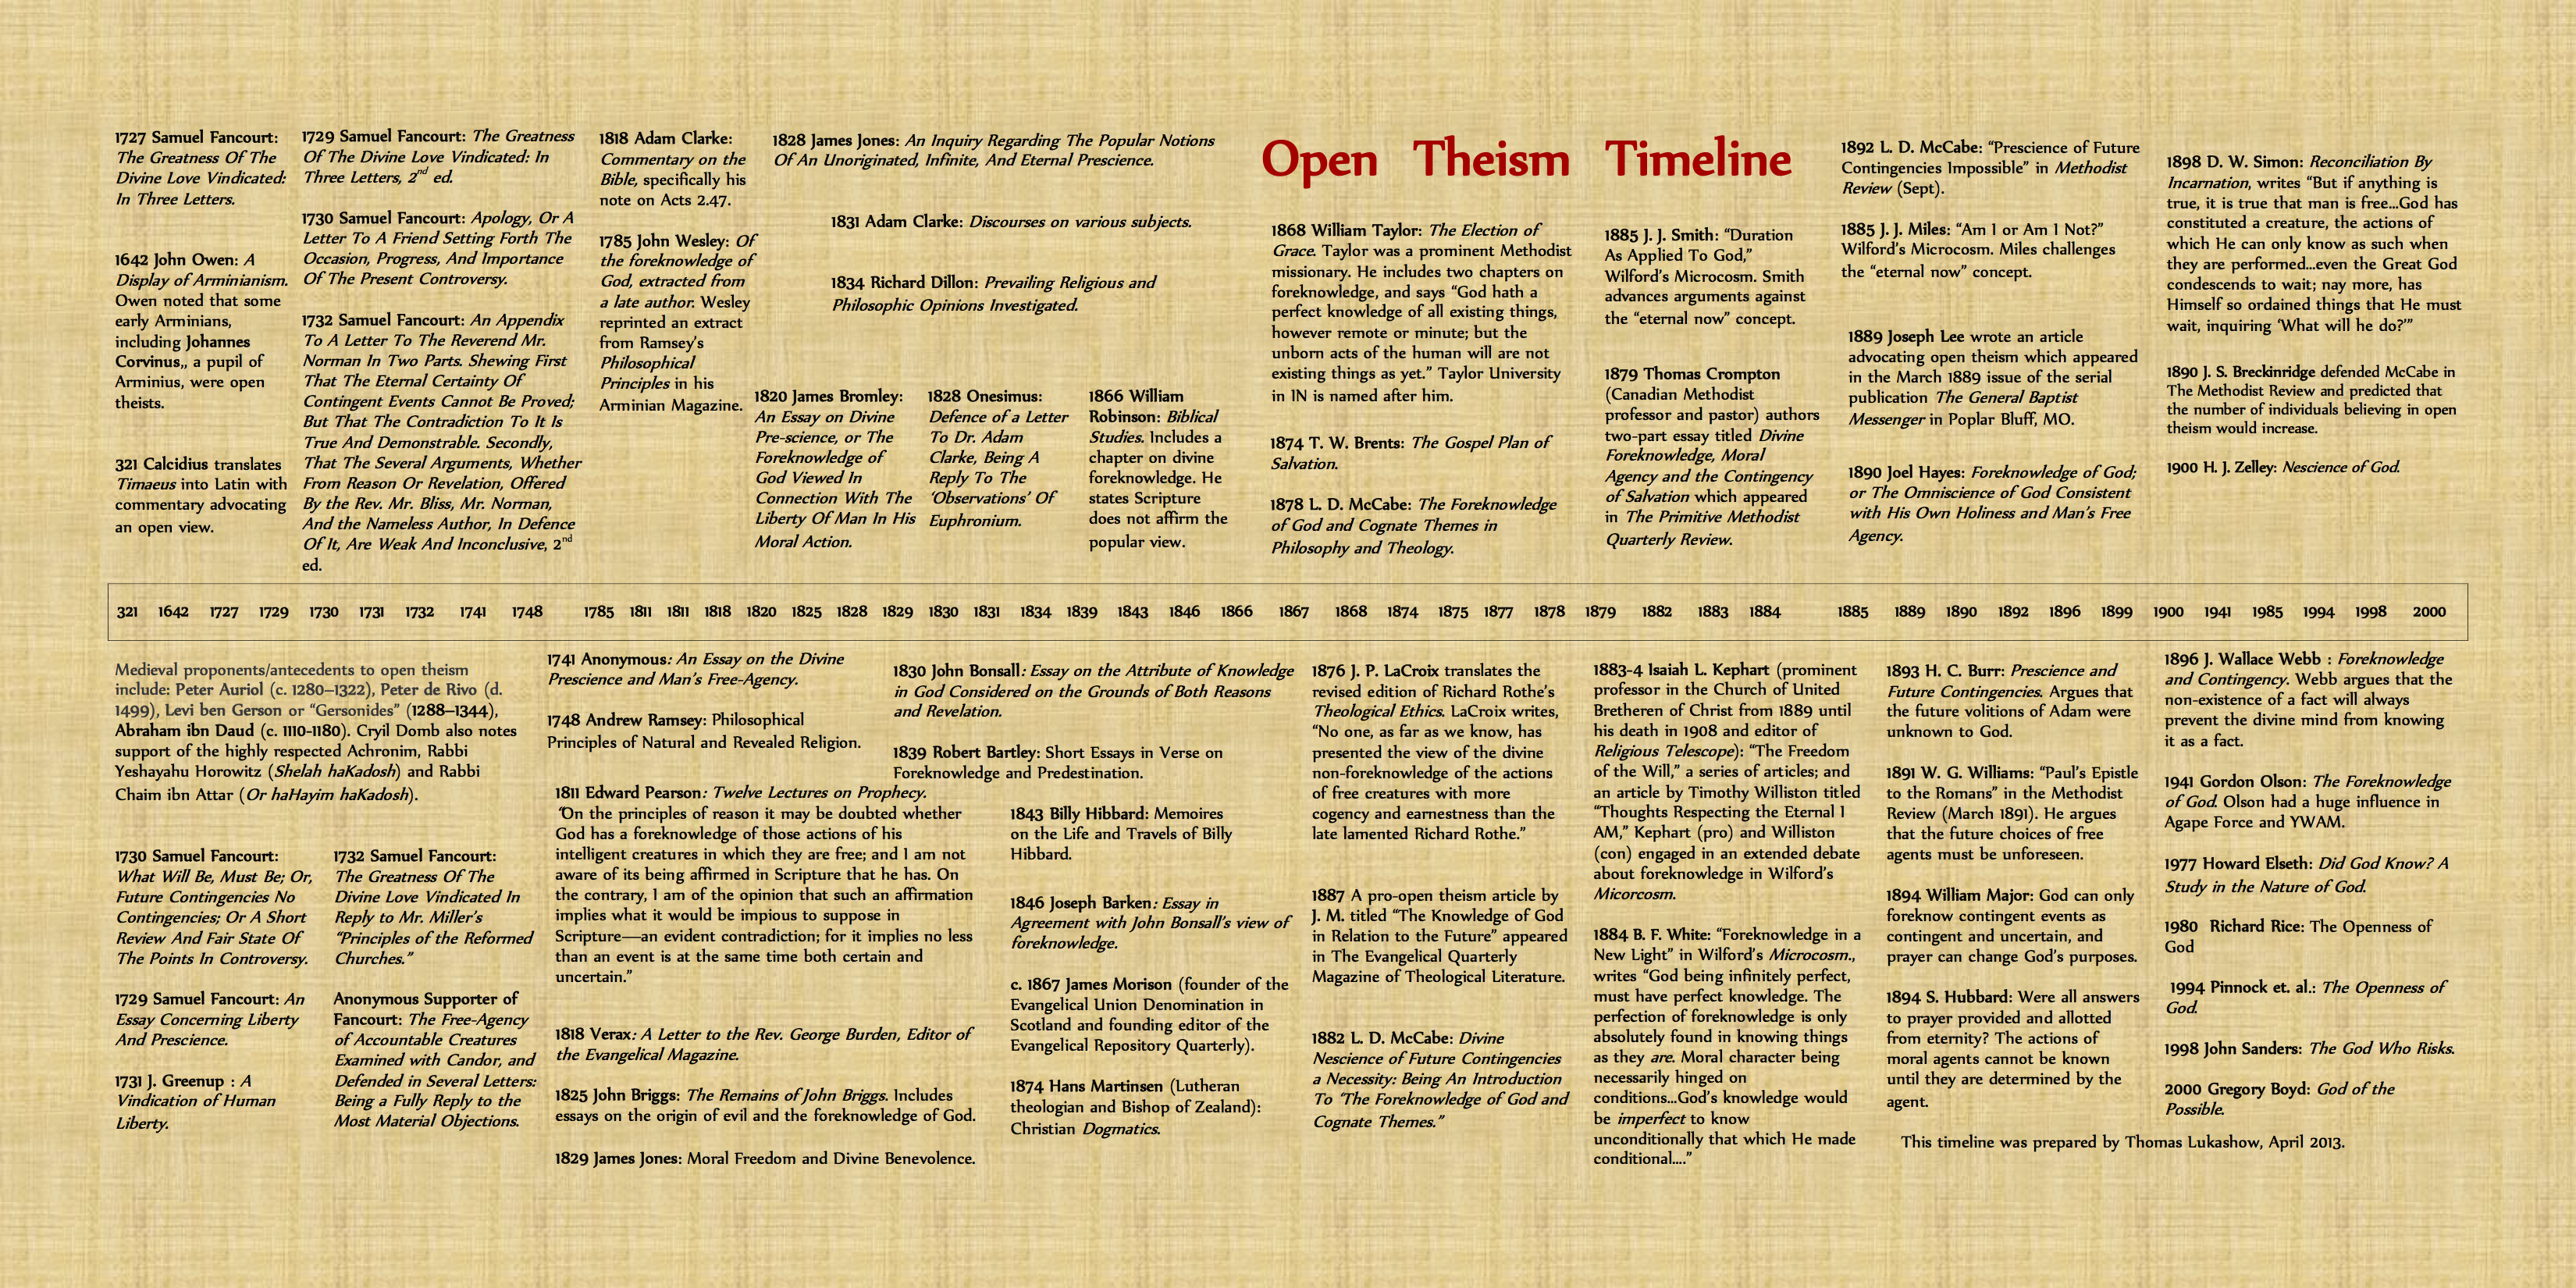 Open Theism Timeline